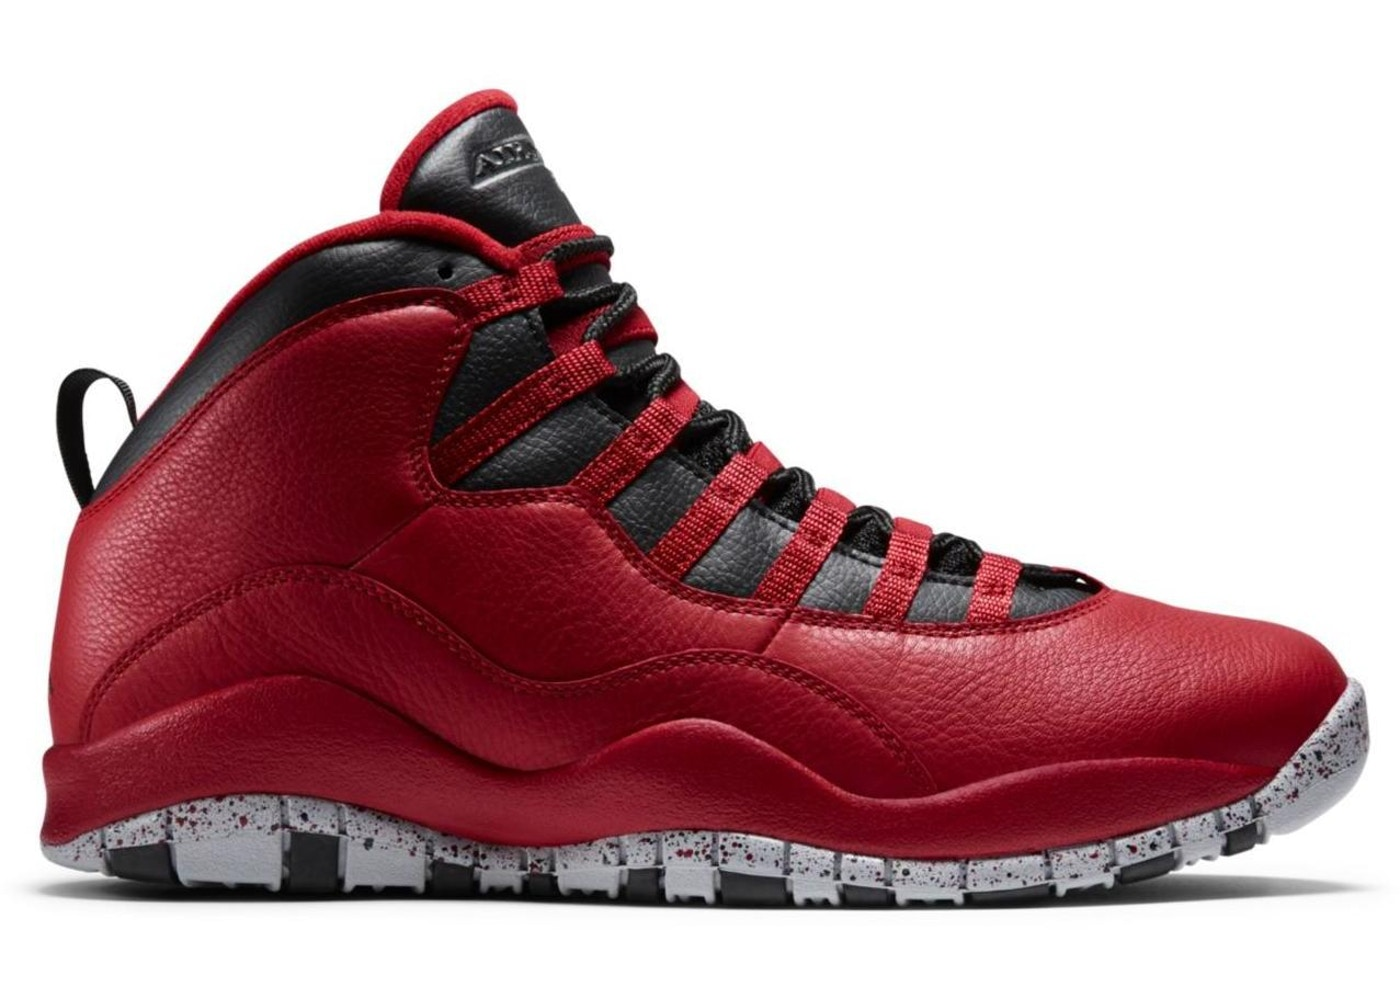 4ed4e85ded2246 Jordan 10 Retro Bulls Over Broadway - 705178-601